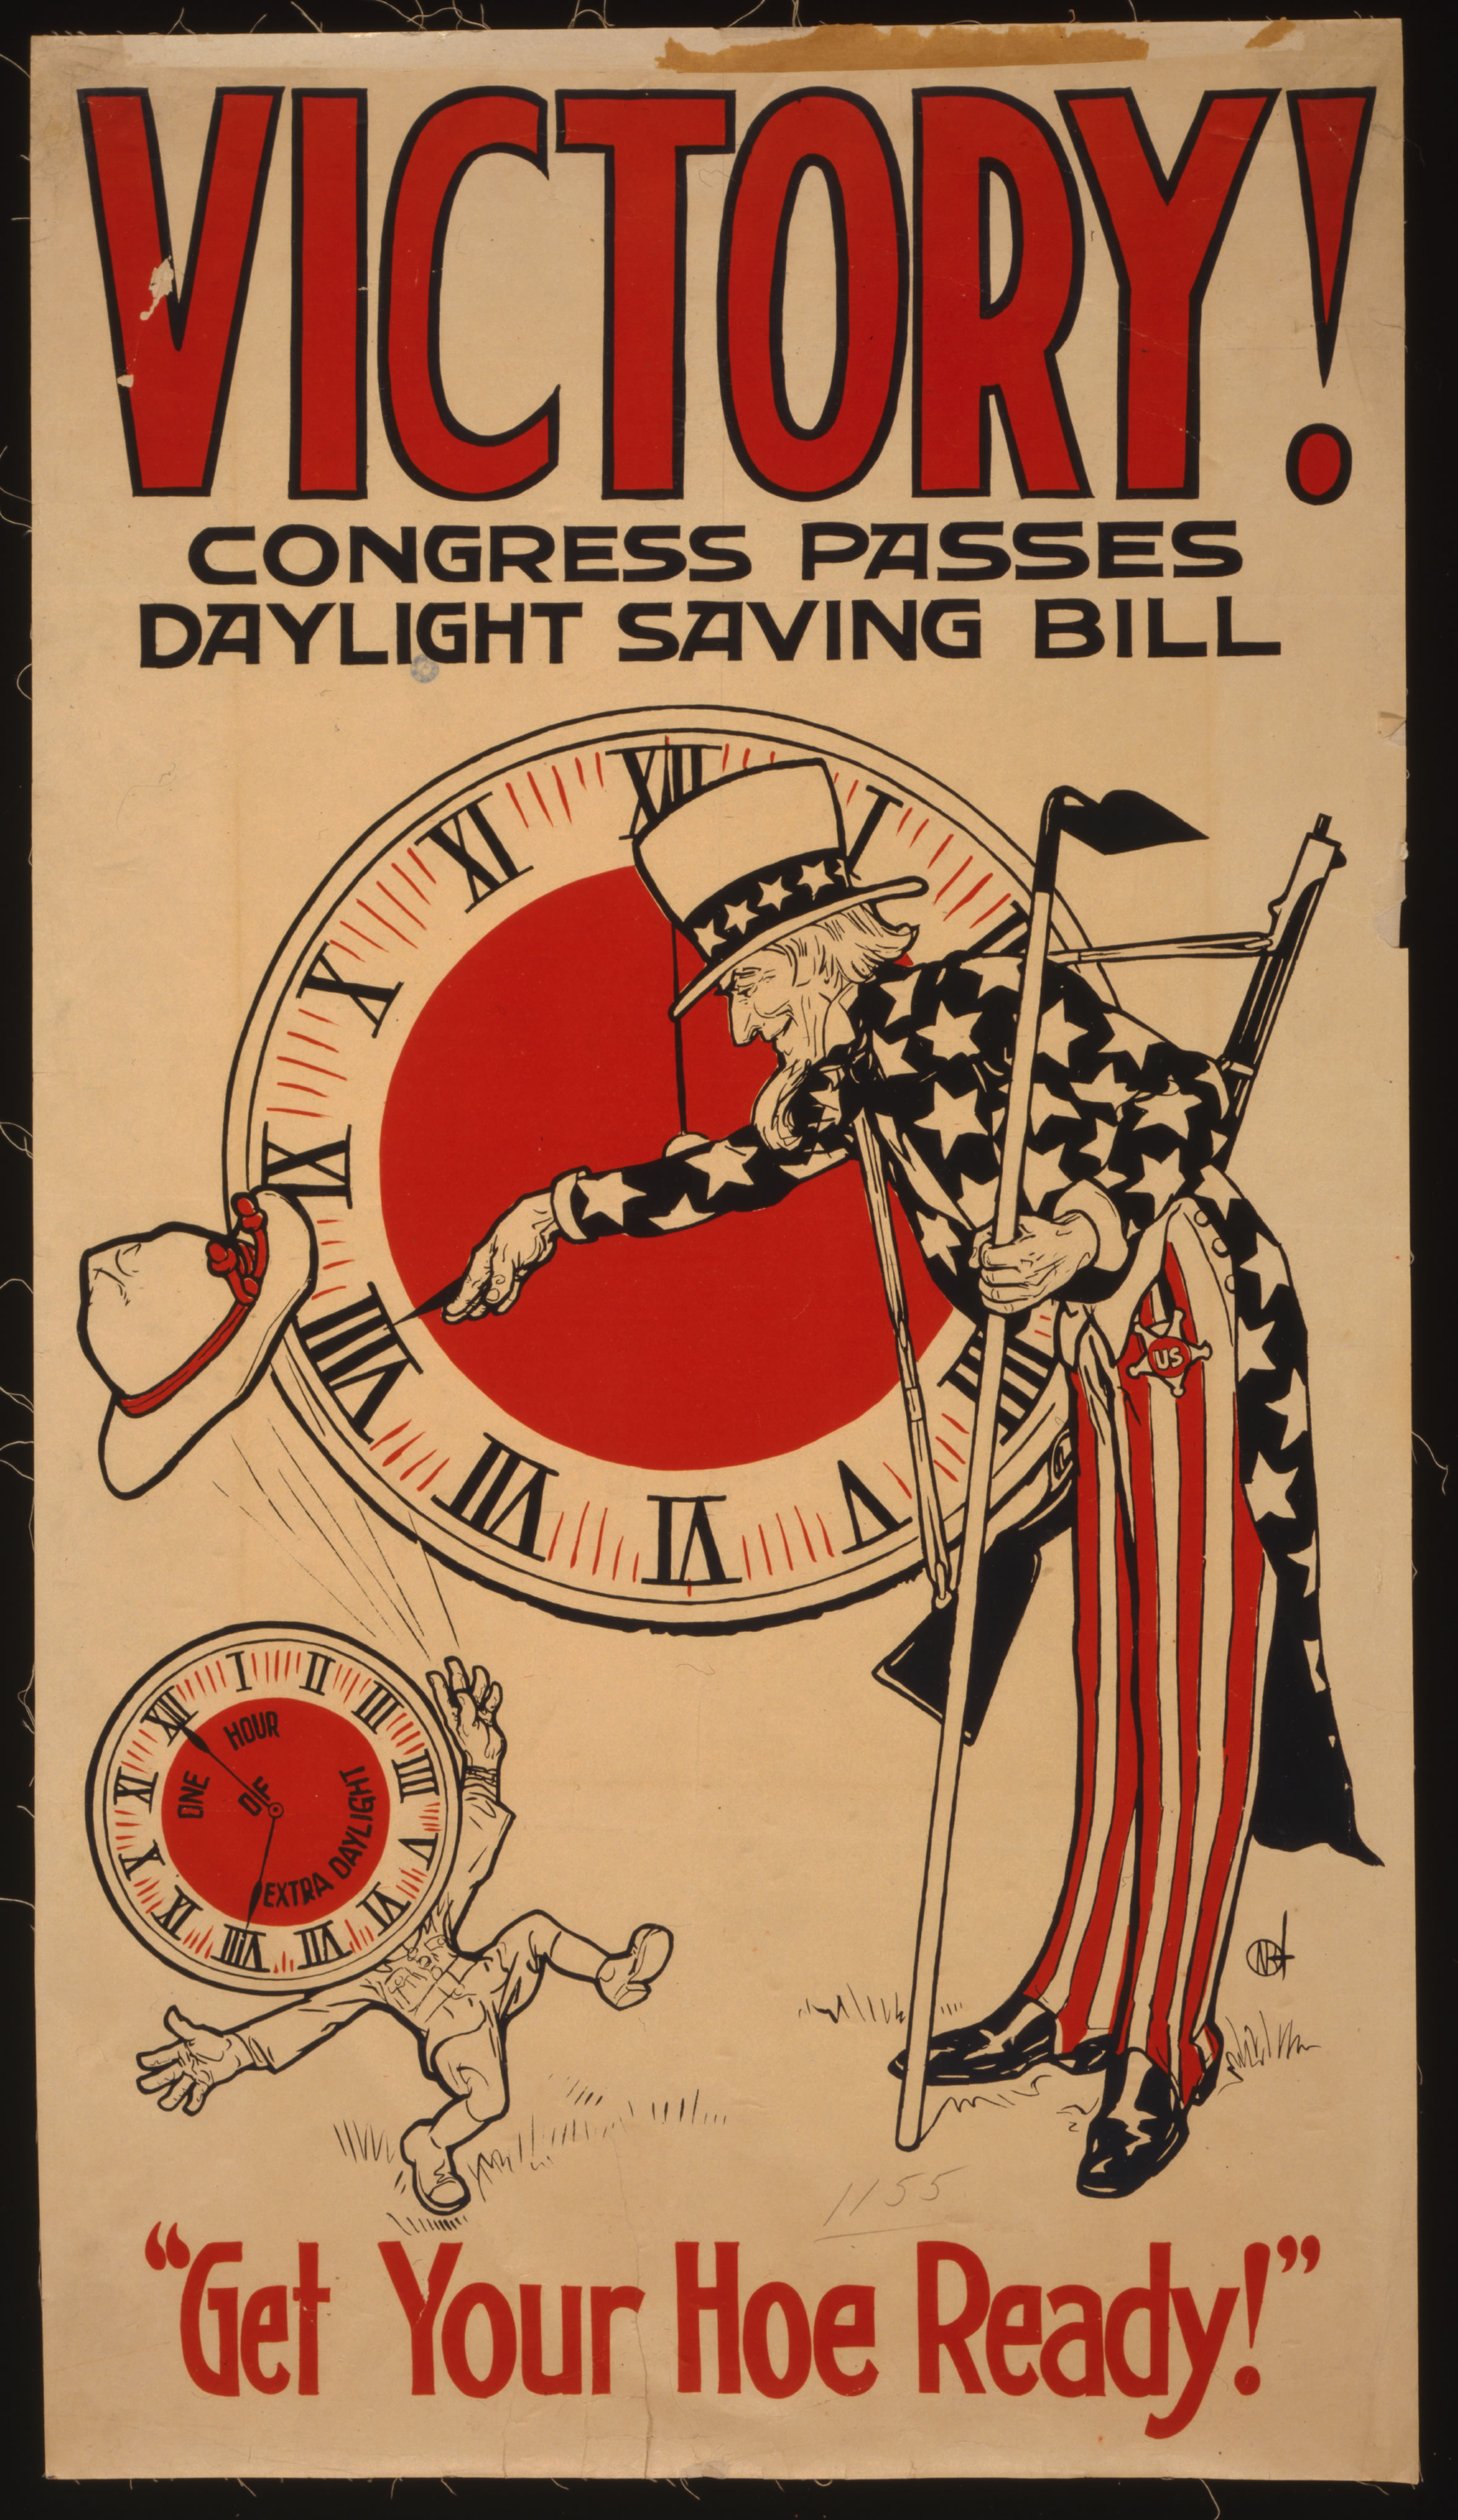 Broadside cheering the passage of the Daylight Saving Time Act in 1918